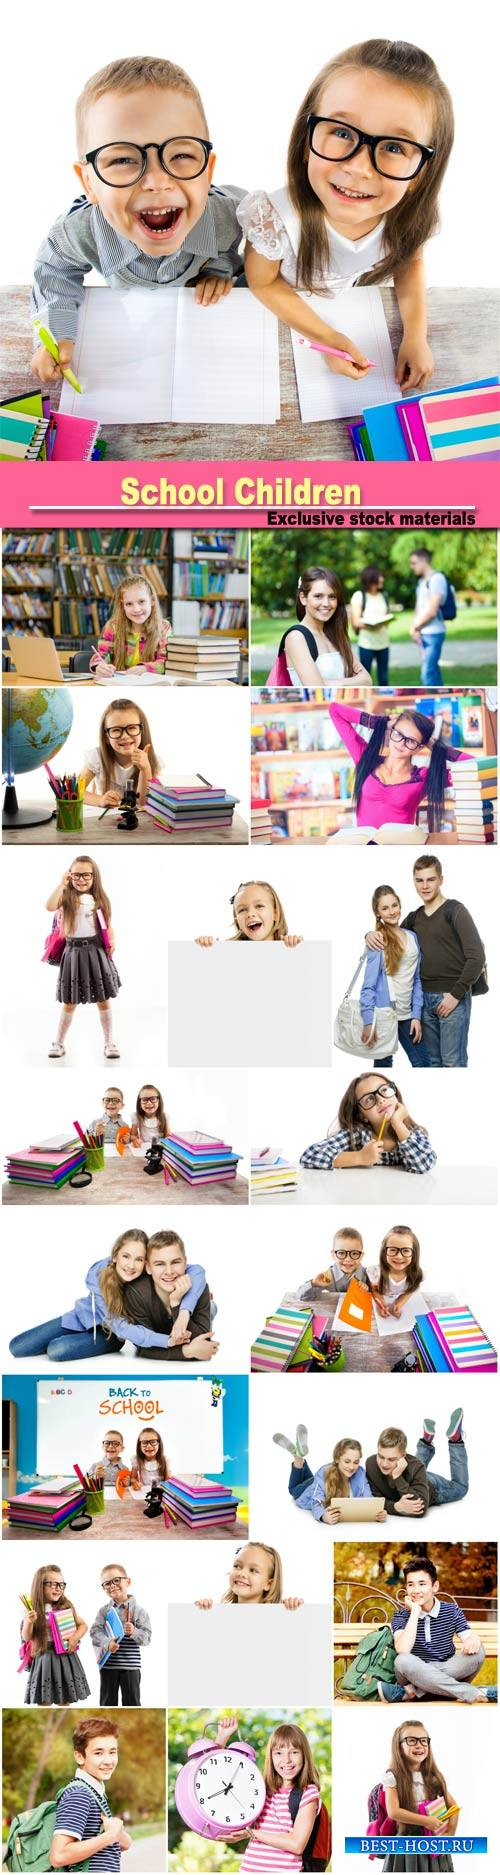 School Children, student with glasses reading books in the library